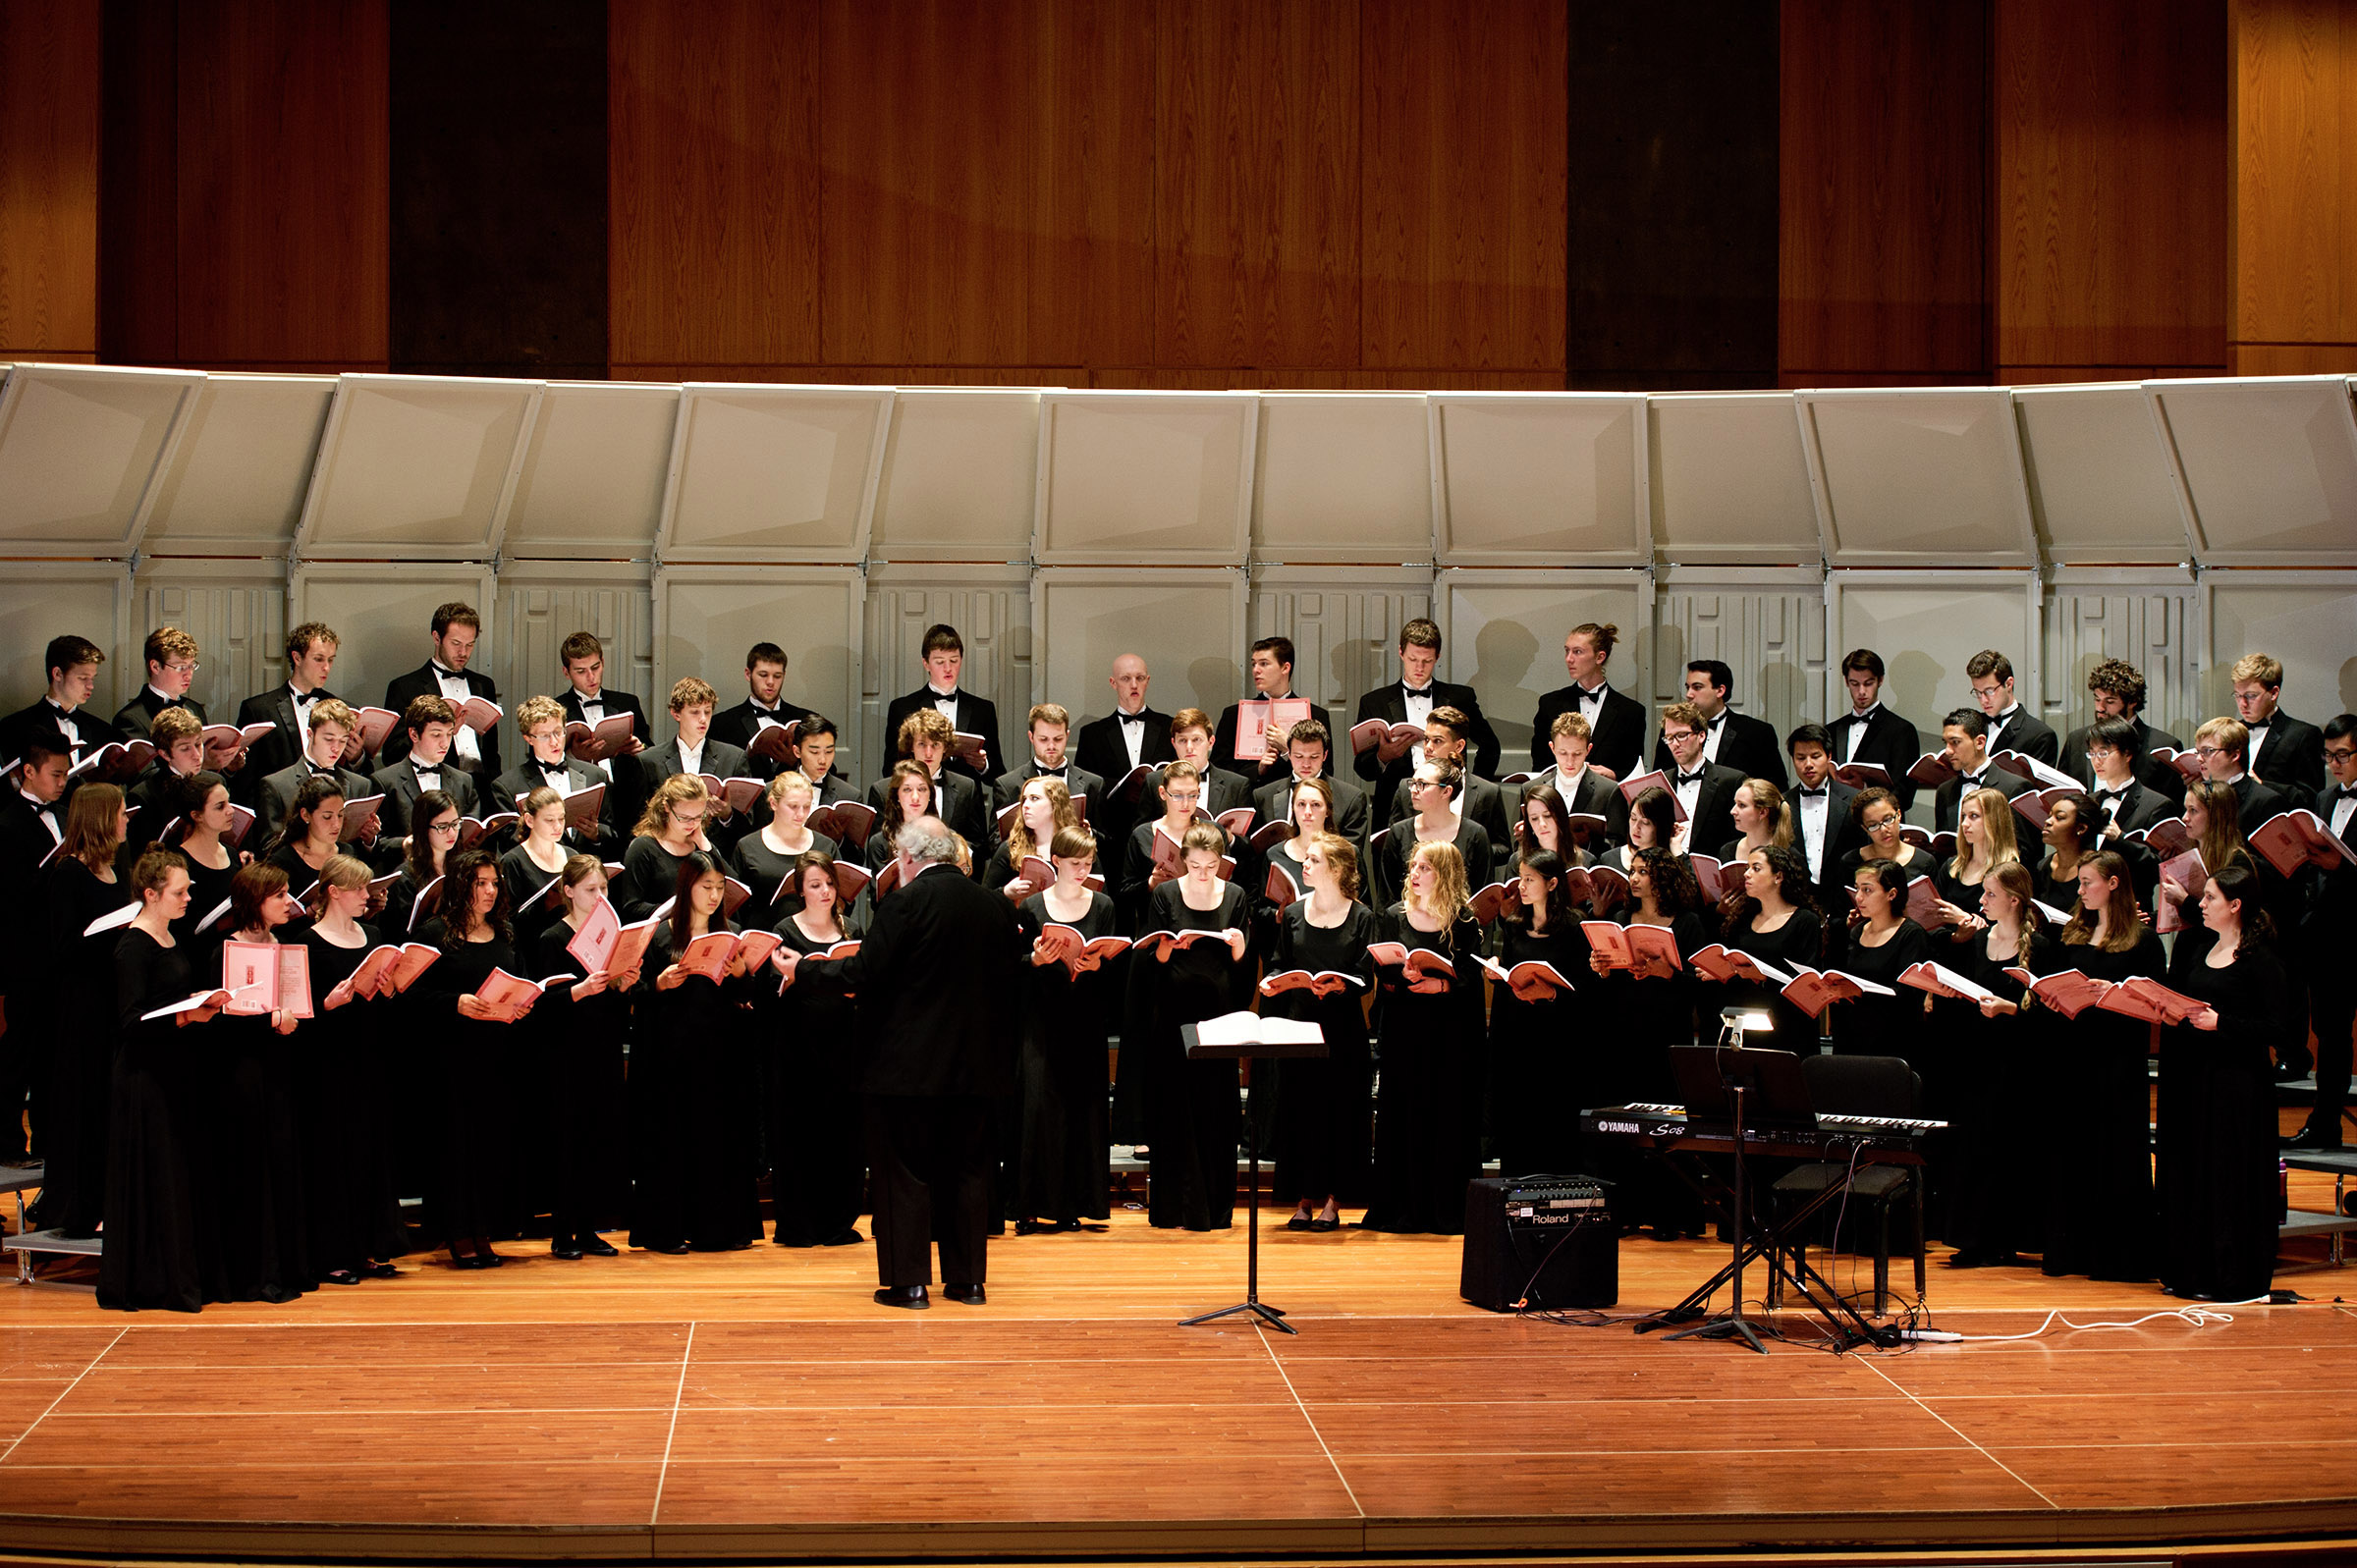 The choir, under the direction of G. Roberts Kolb, performs in Wellin Hall.